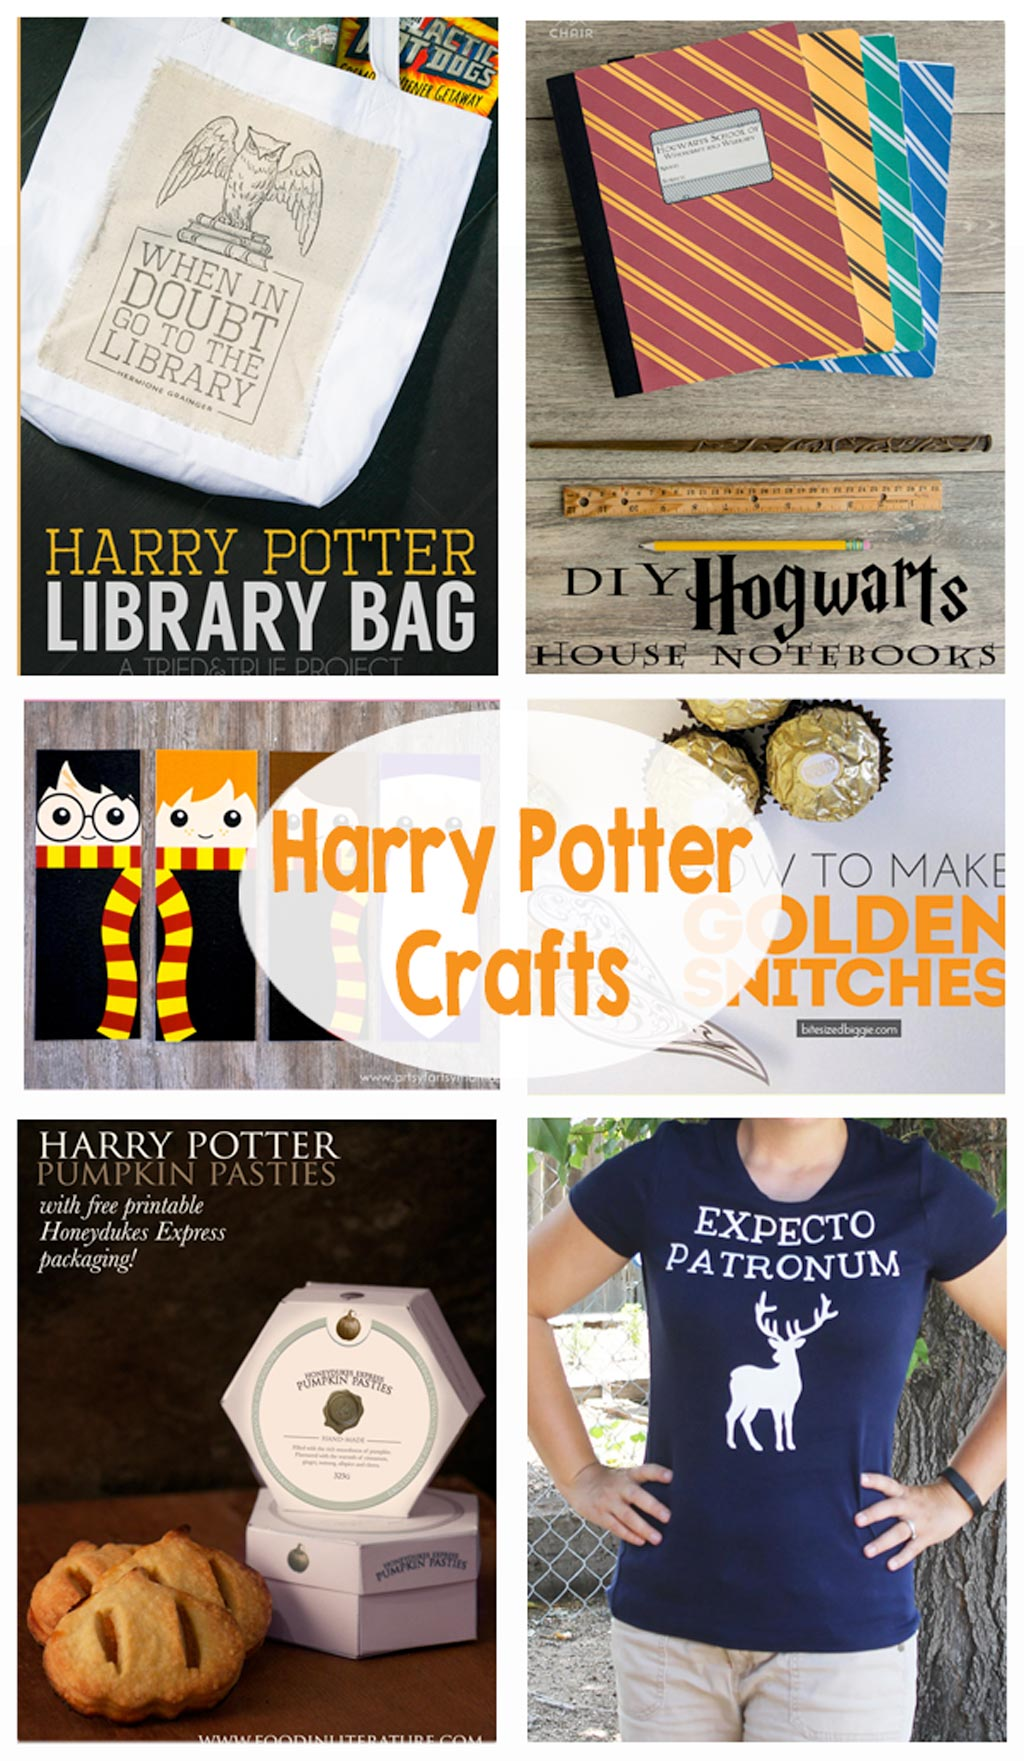 image regarding Harry Potter Printable Bookmarks called Harry Potter Crafts - The Composing Chicks